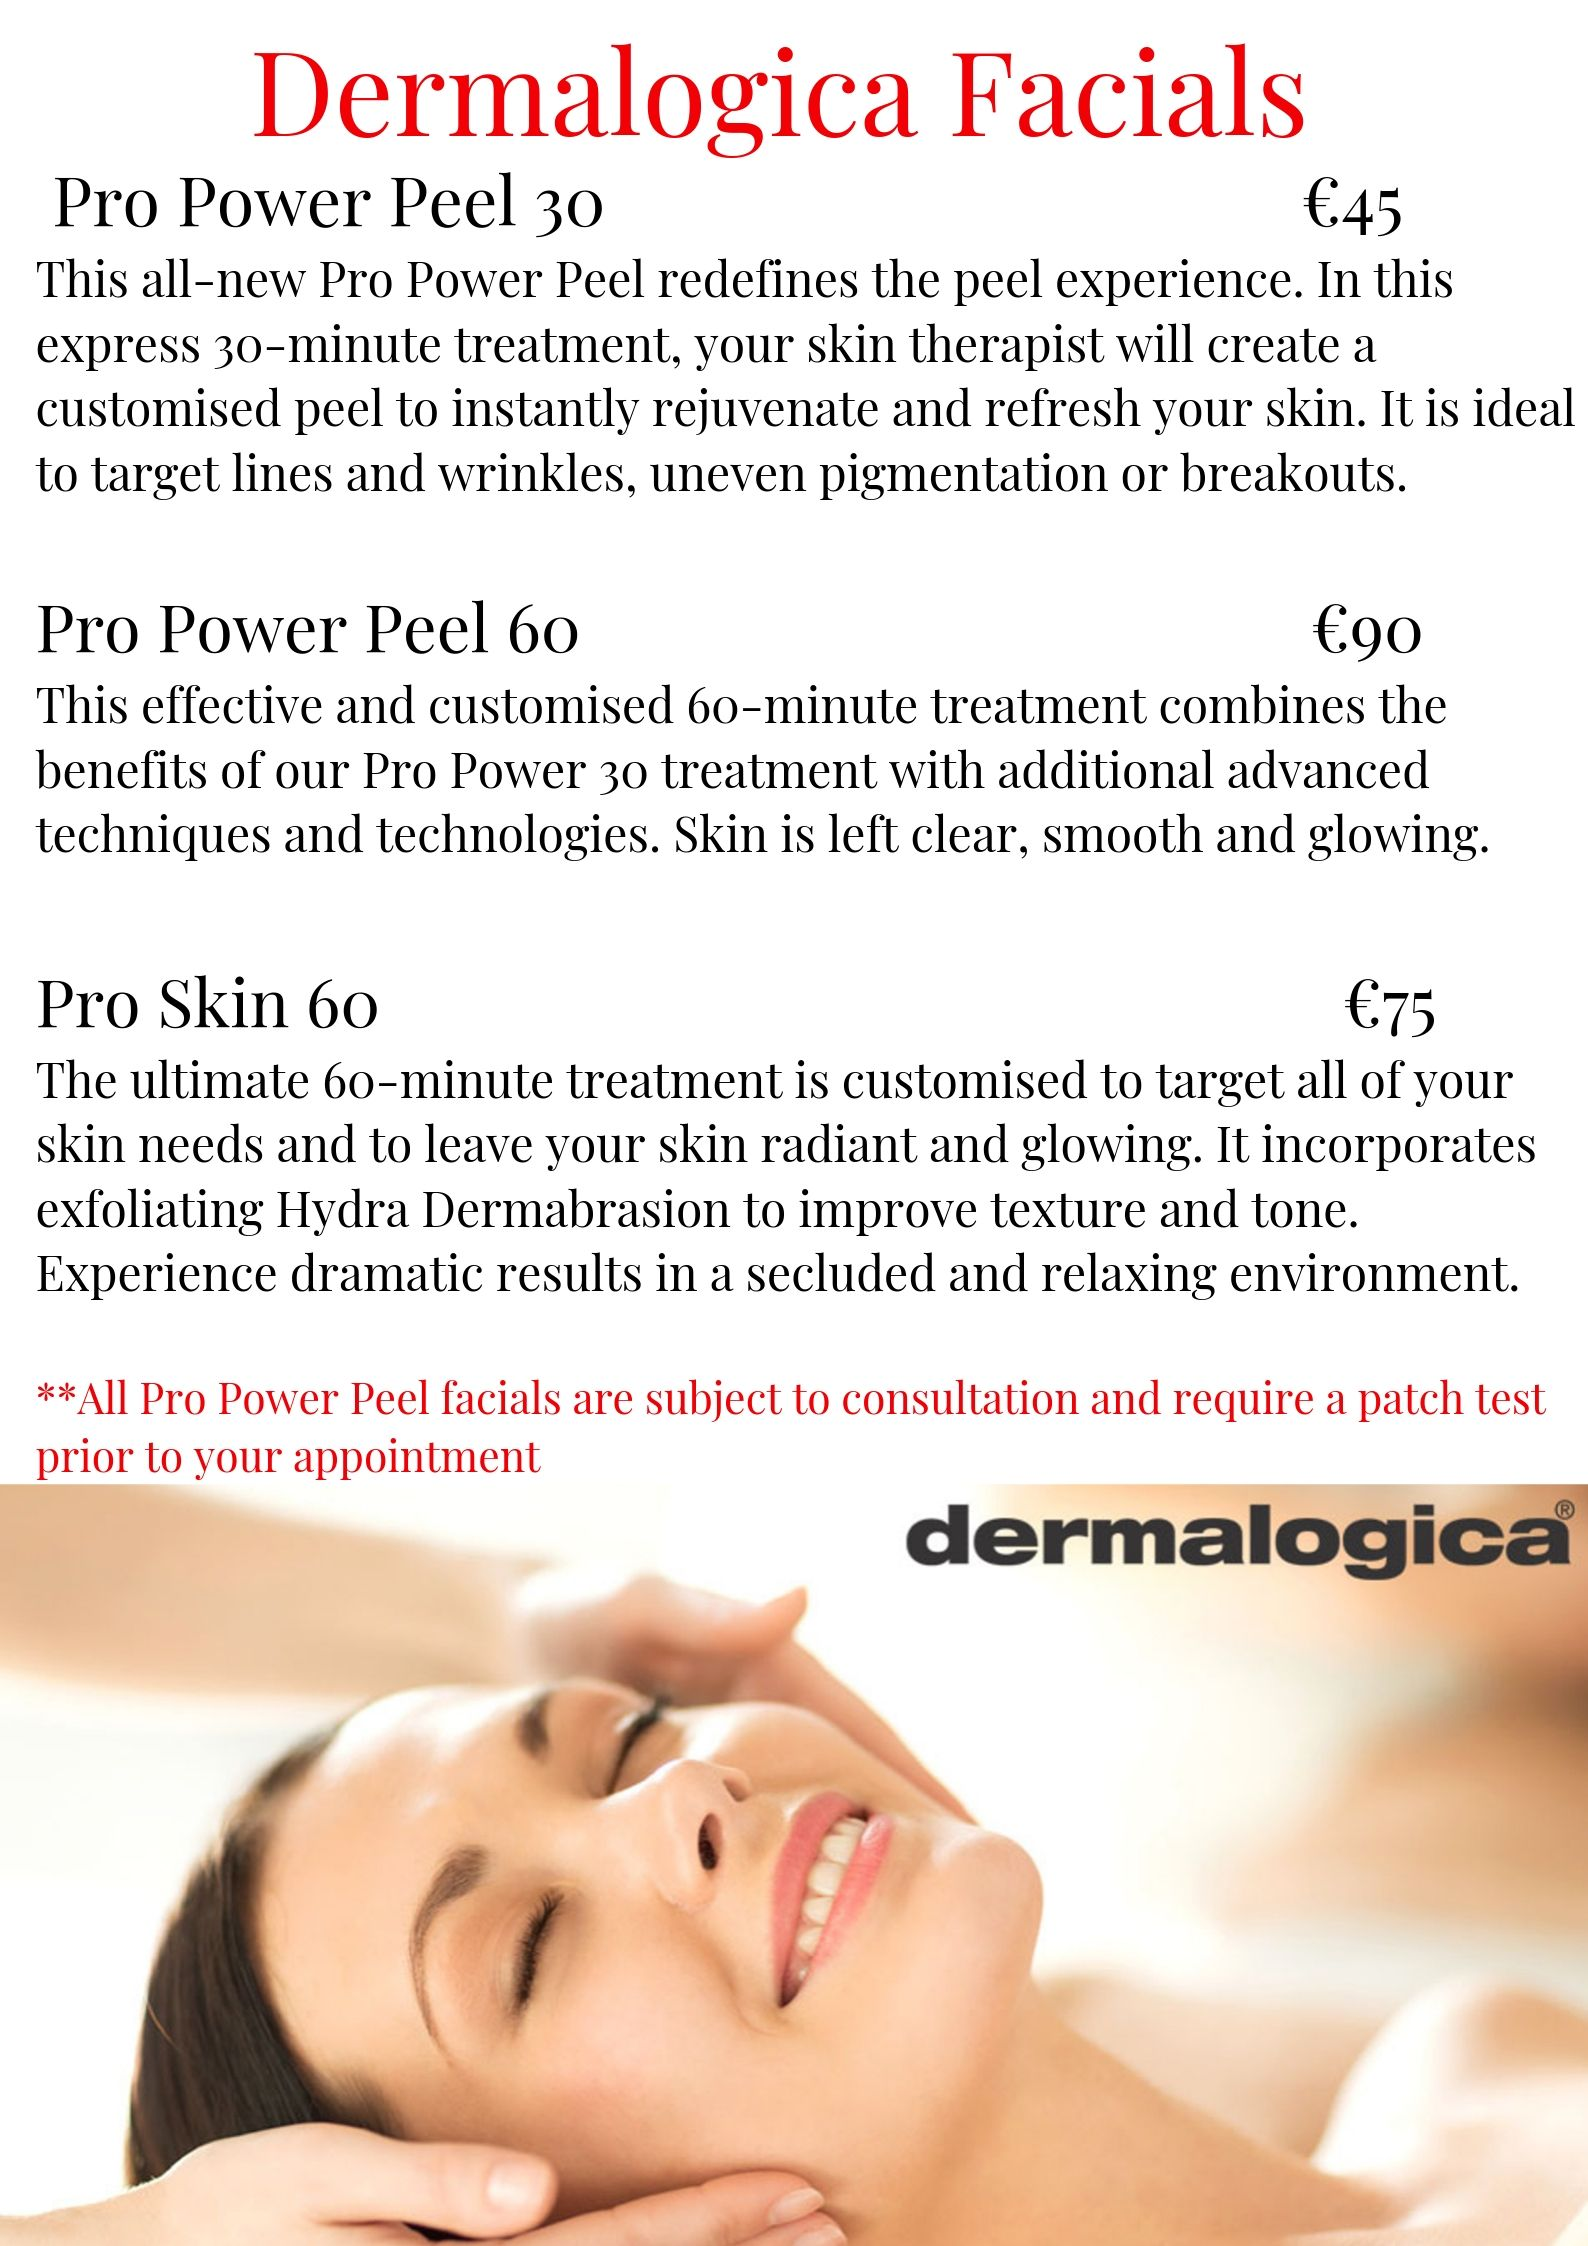 dermalogica-facials-at-petals-price-list-.jpg